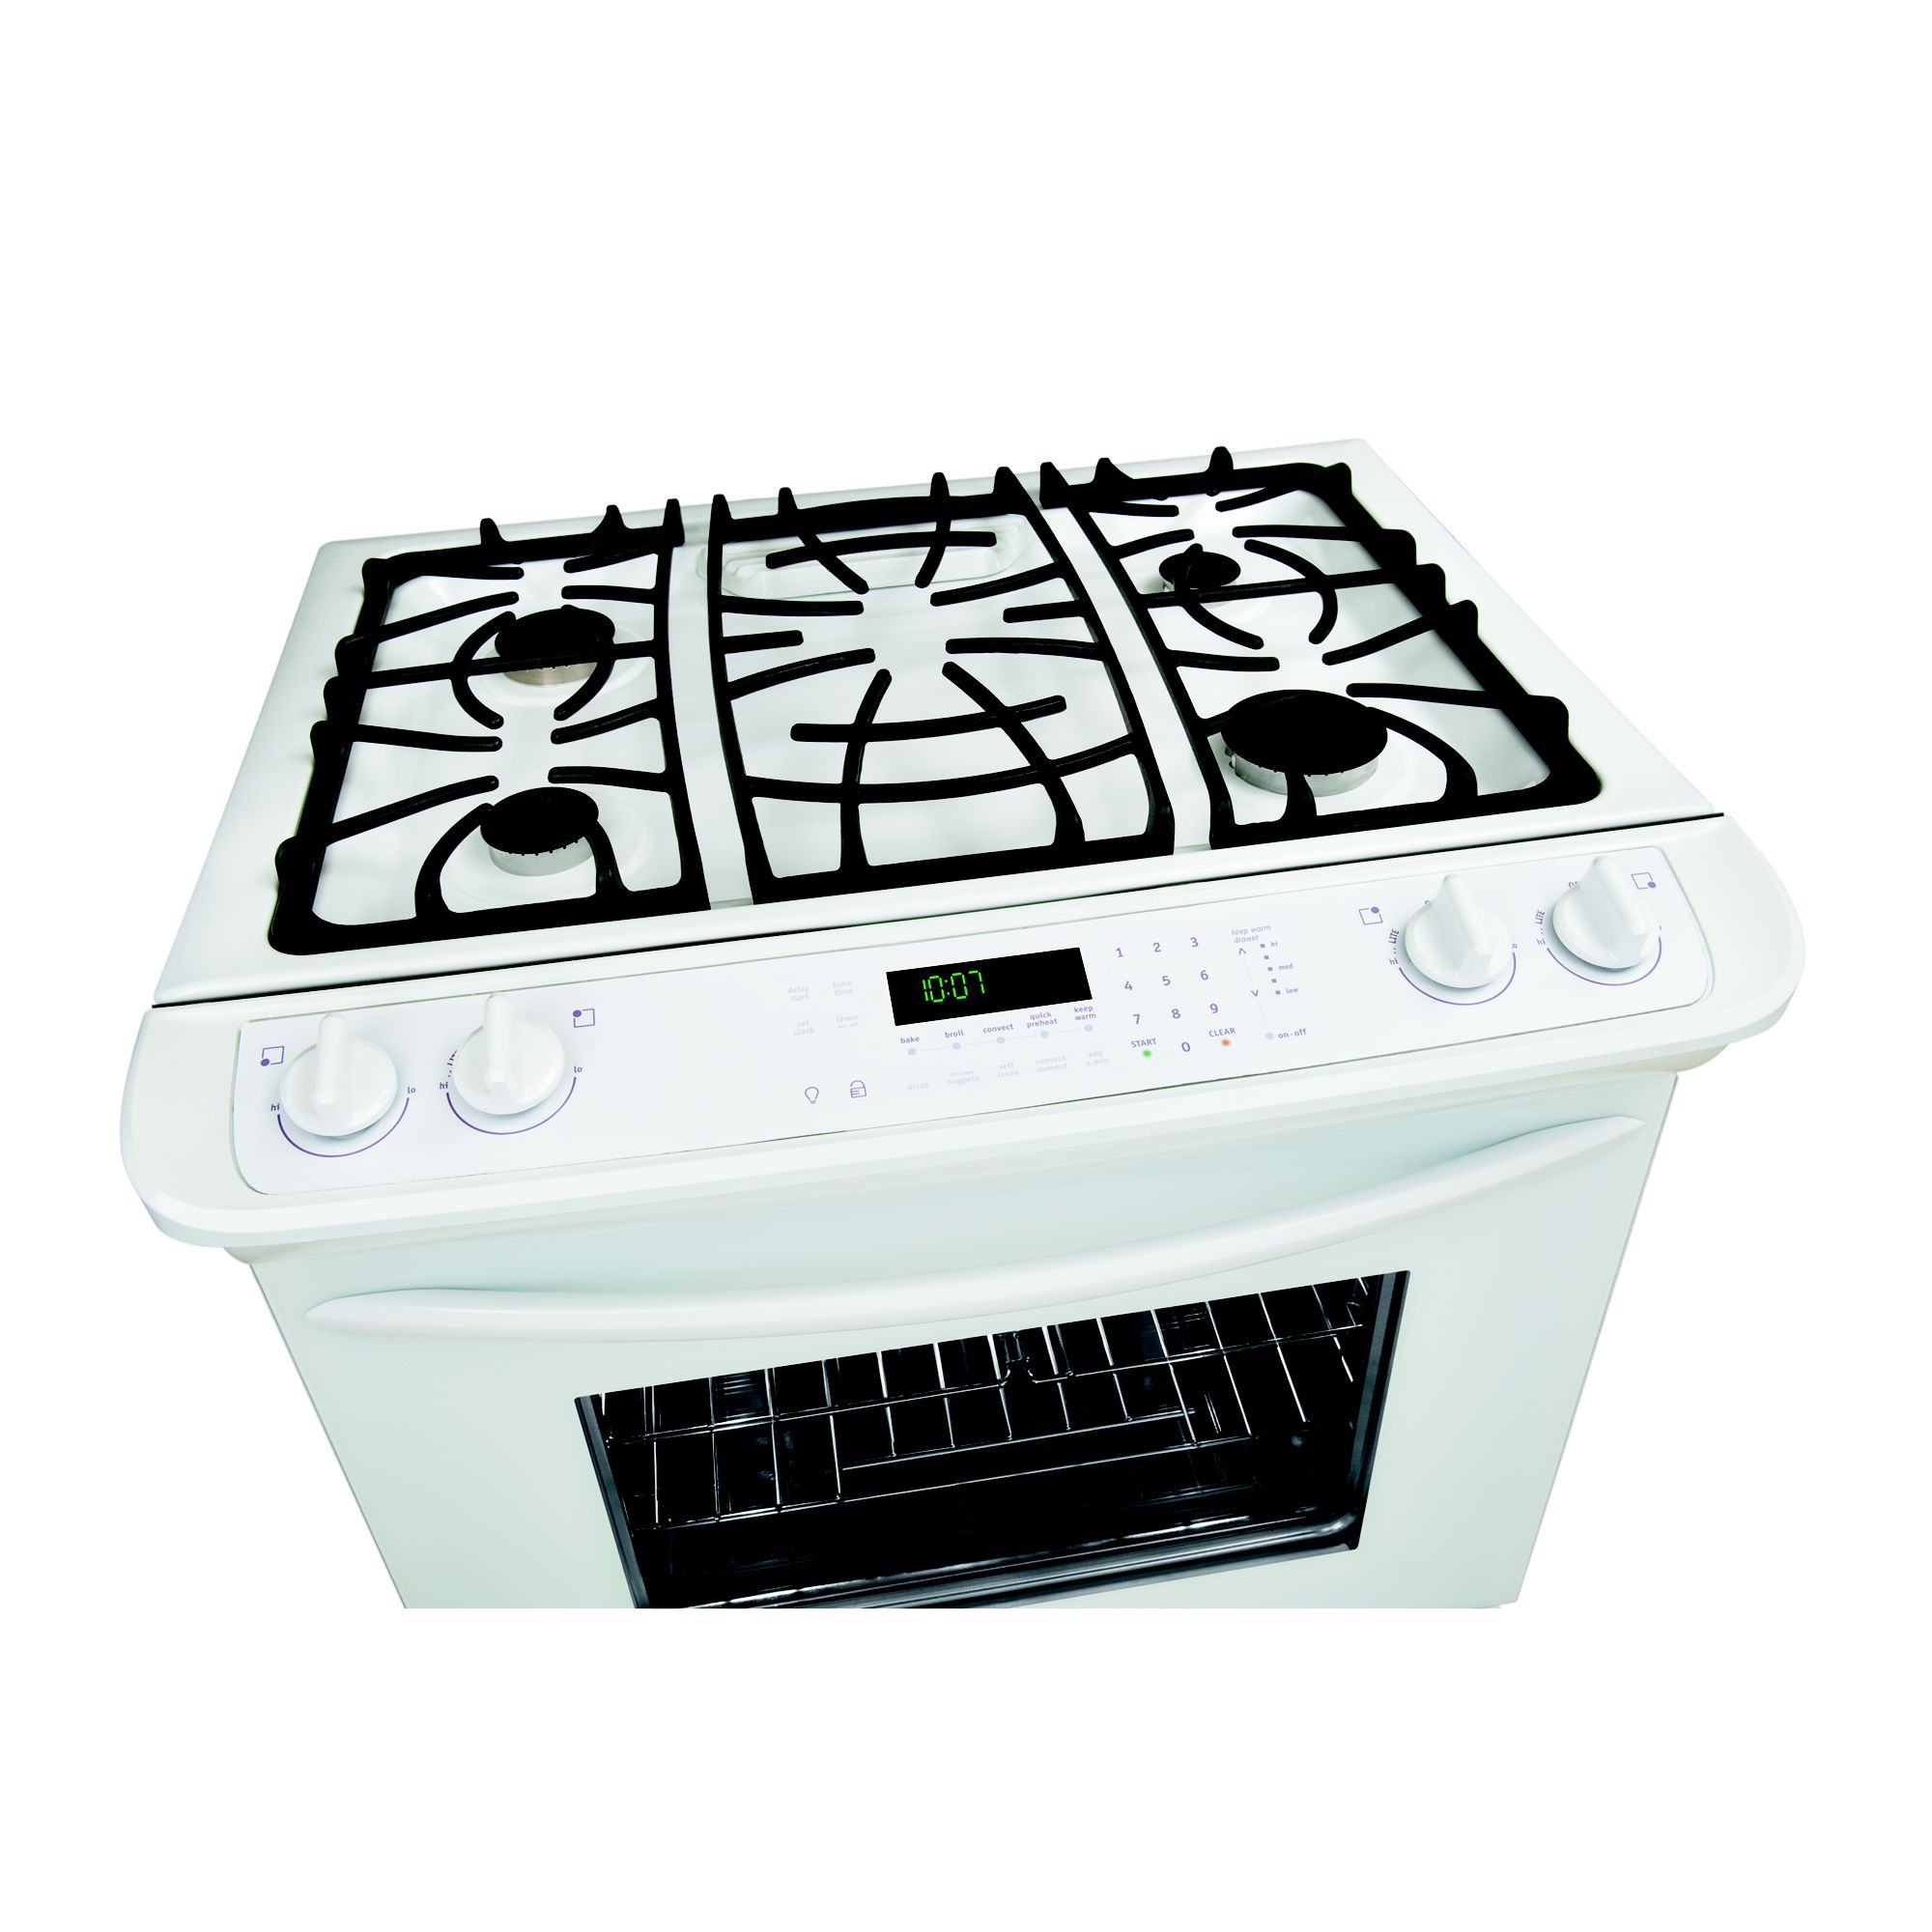 Frigidaire Gallery 4.2 cu. ft. Slide-In Gas Range - White